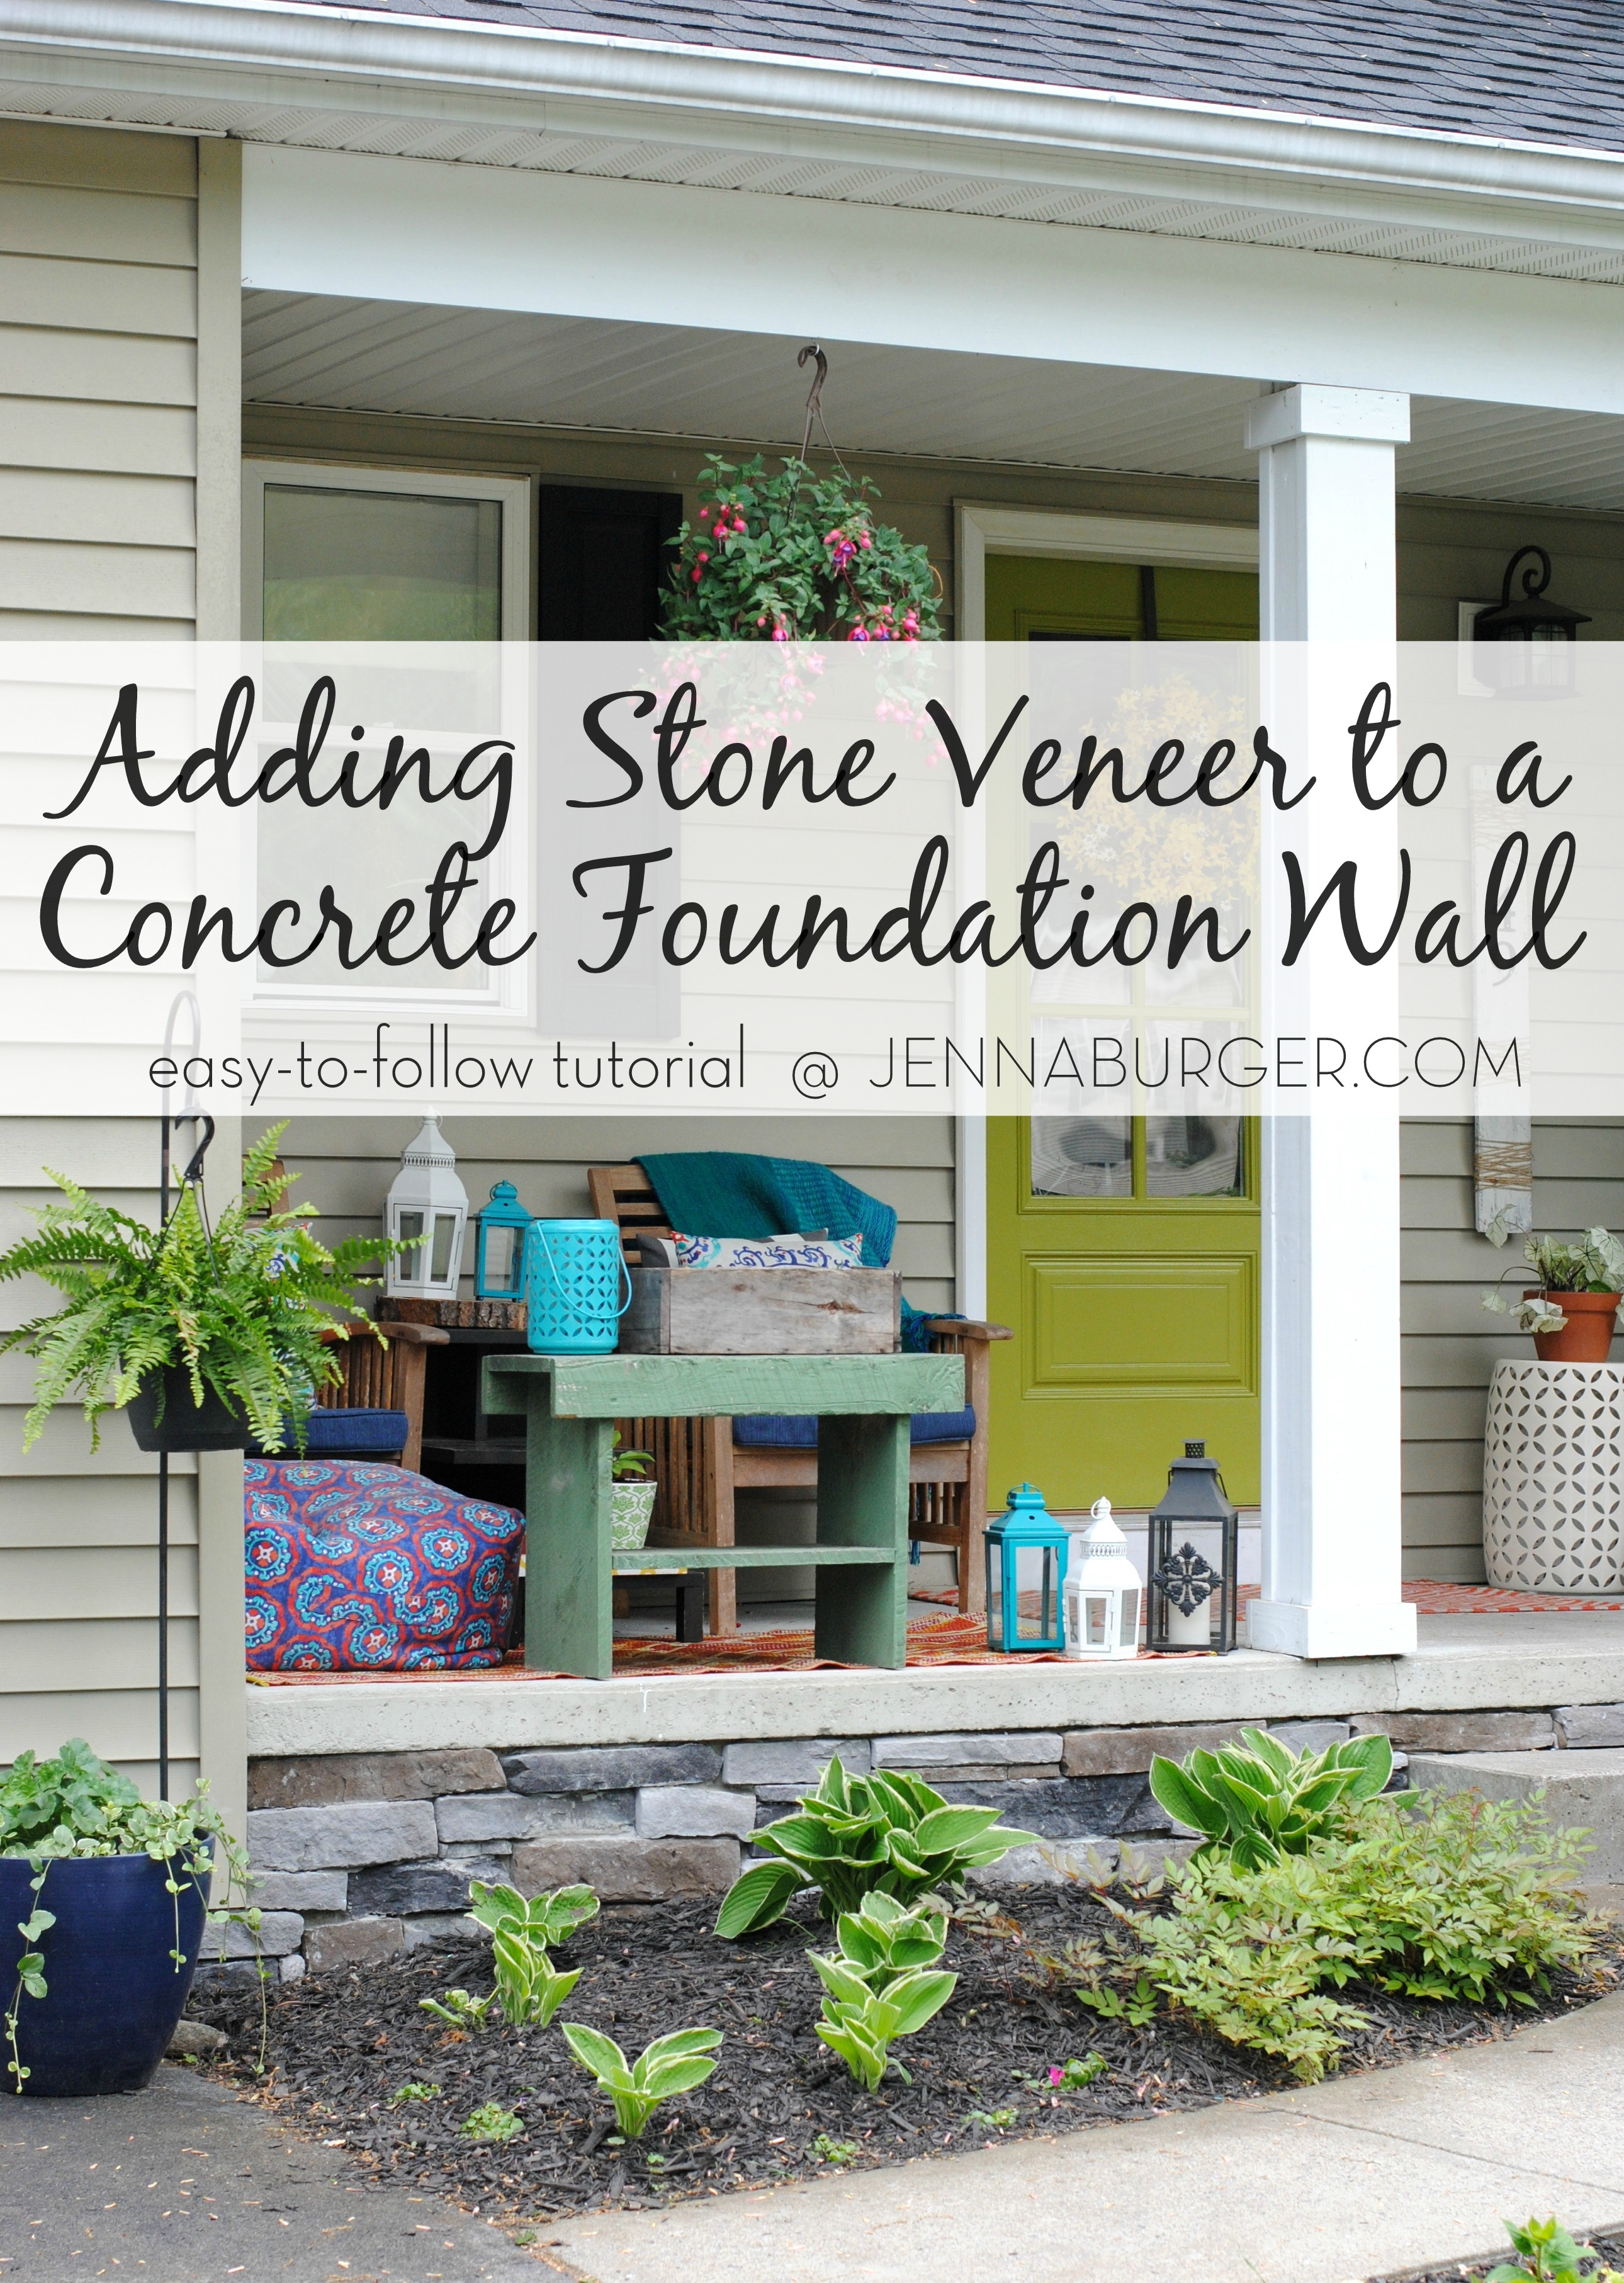 Diy Tutorial For Adding A Stone Veneer To Concrete Foundation Wall Give